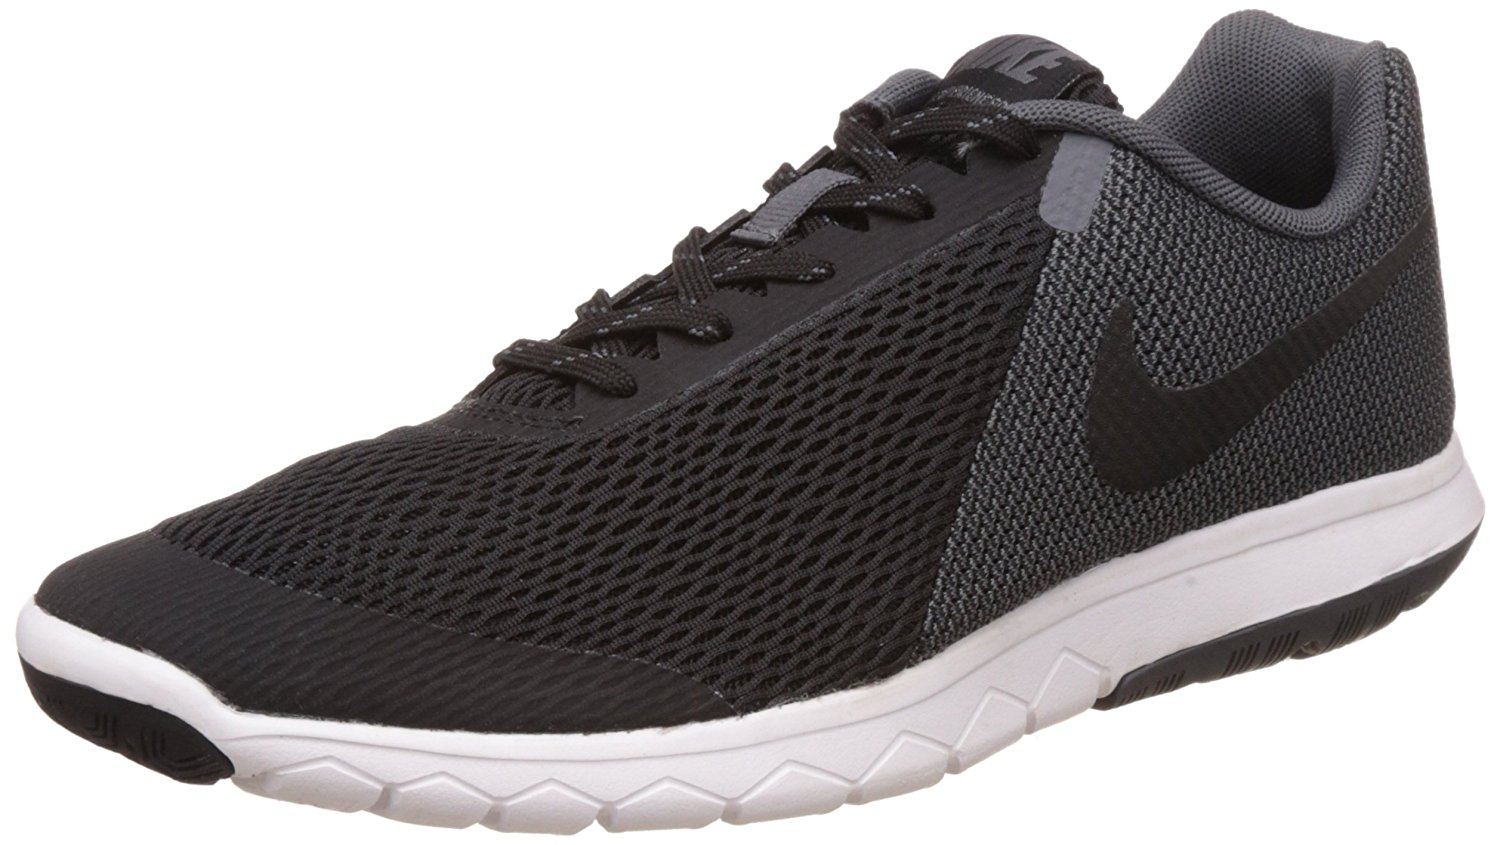 d8f7686302e8 Buy Nike Flex Experience RN 4 Running Shoe in Cheap Price on Alibaba.com